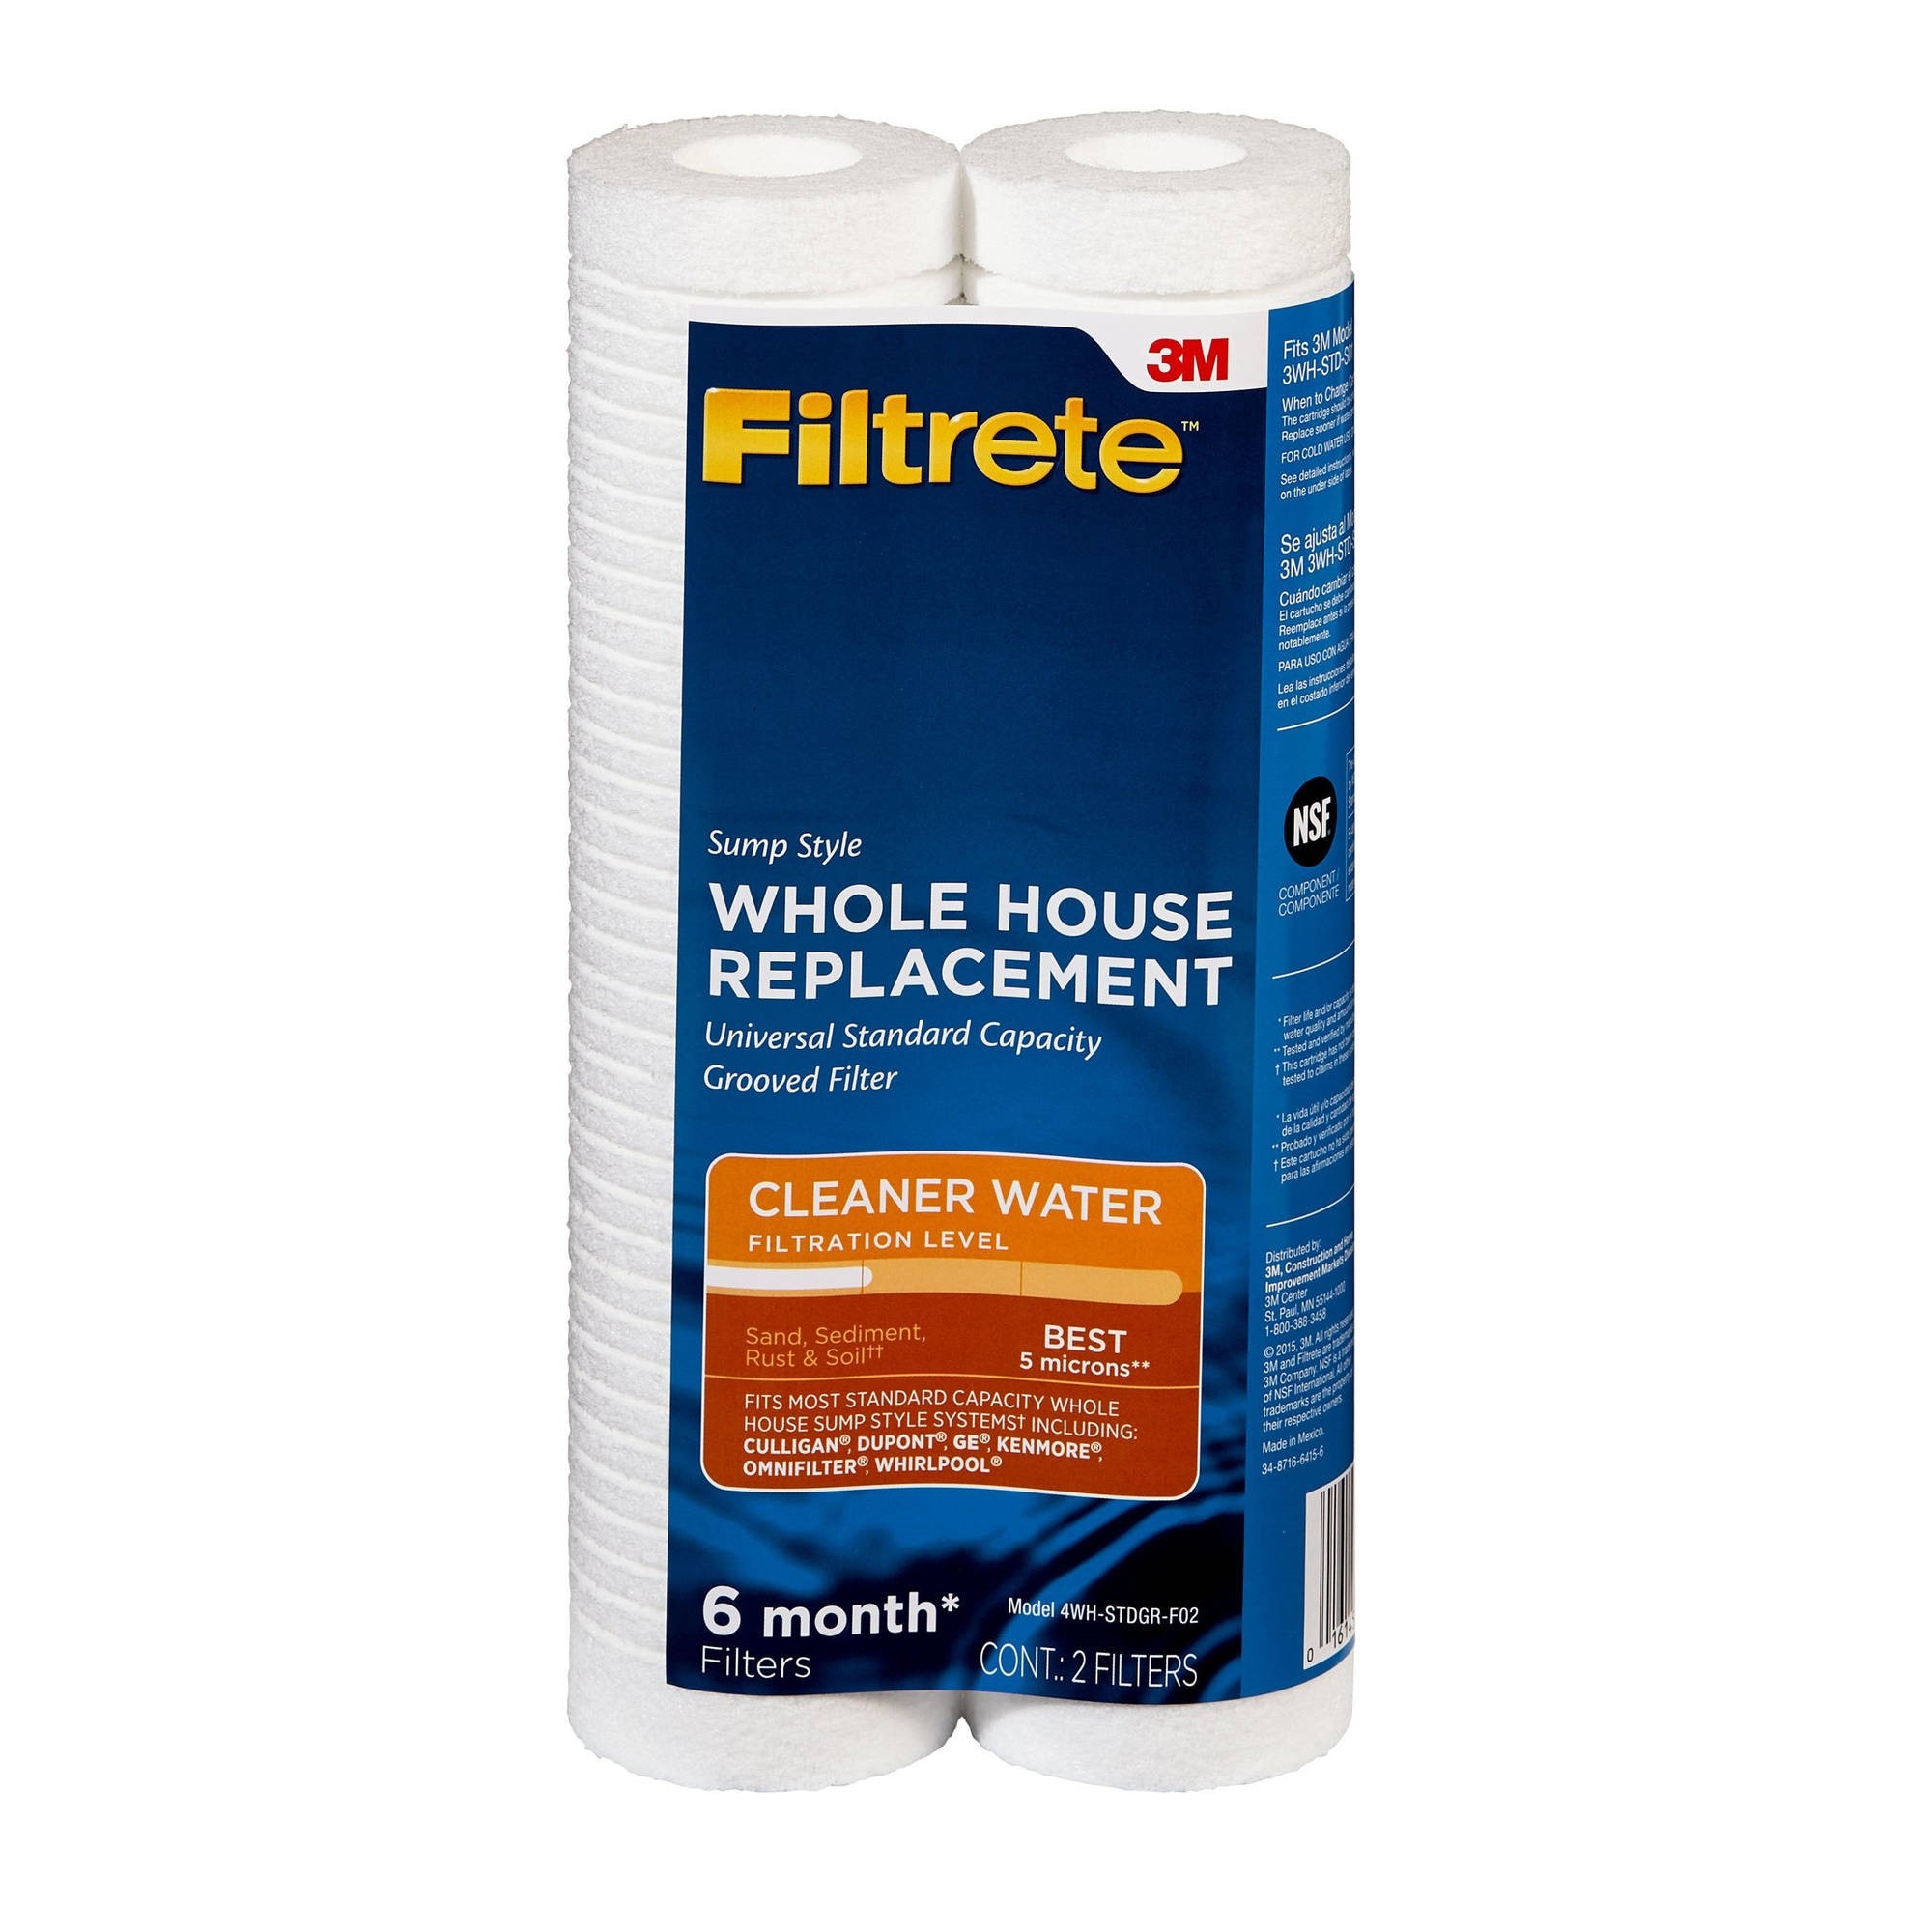 Filtrete Standard Capacity, Grooved Replacement Filter, Sump Style (sediment - best) - 2 pack